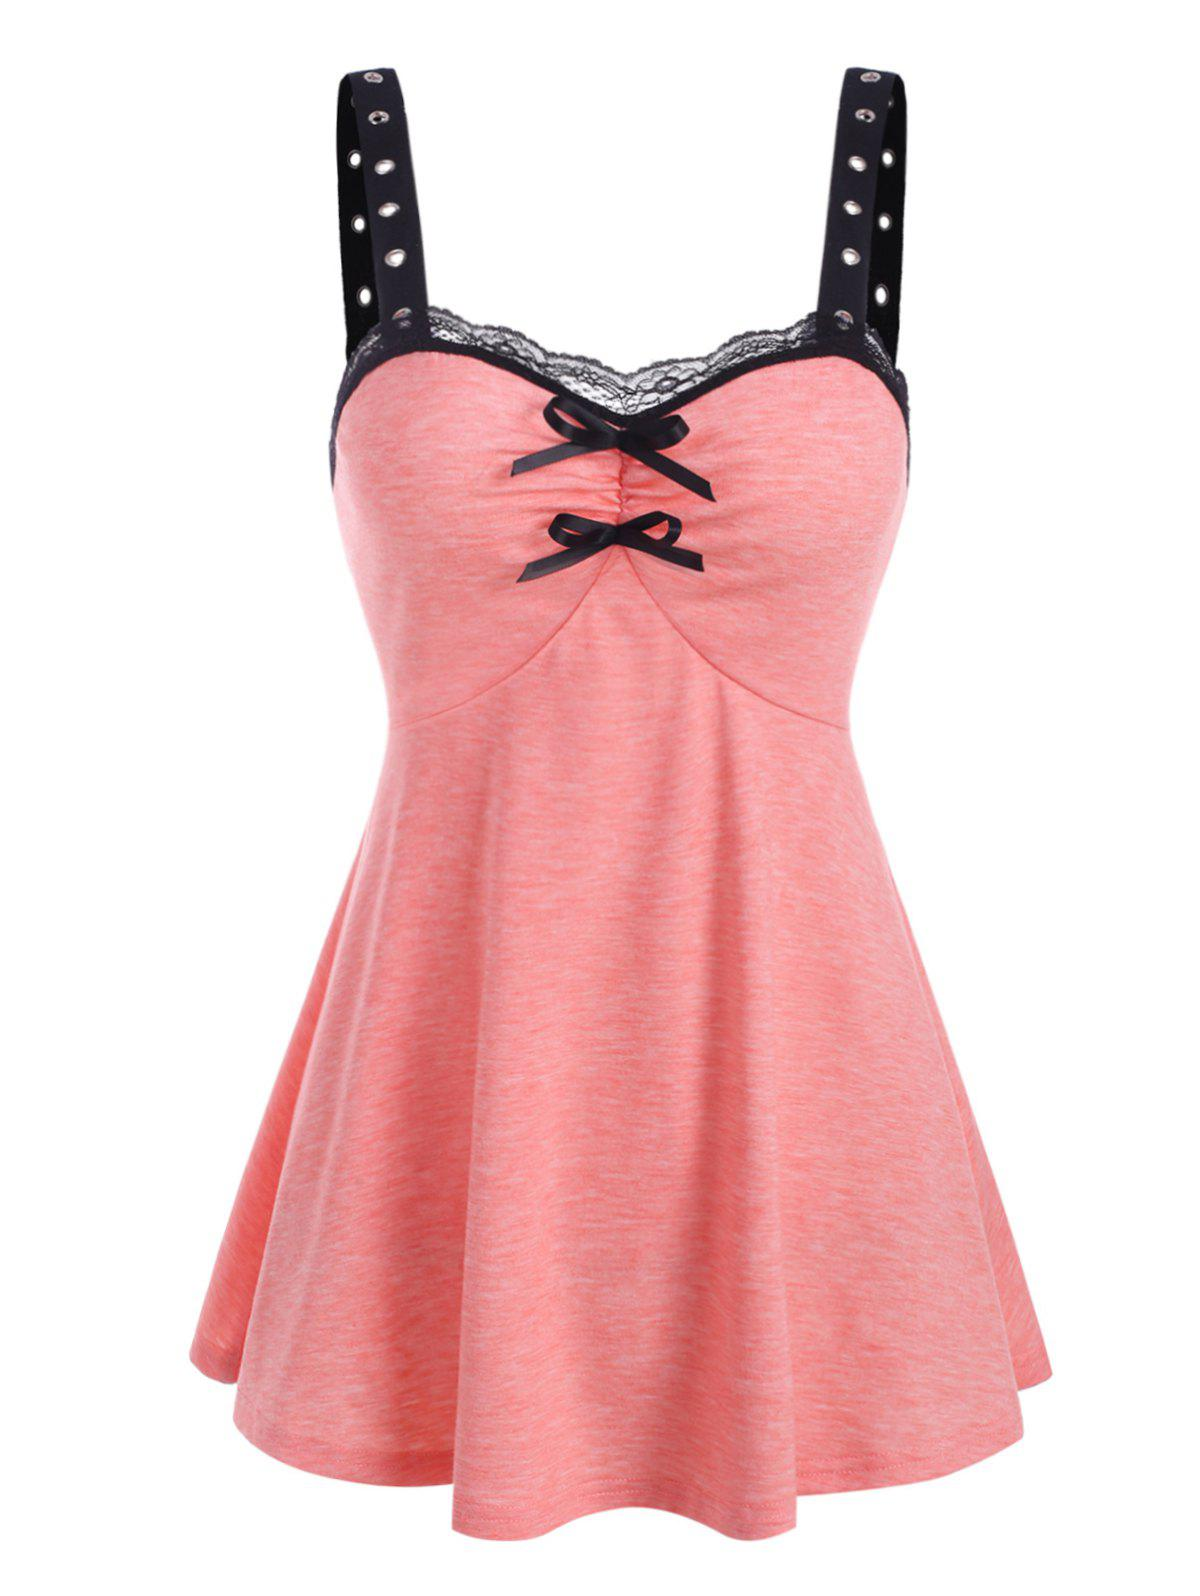 Lace Insert Grommet Bowknot Ruched Tank Top - LIGHT PINK XL